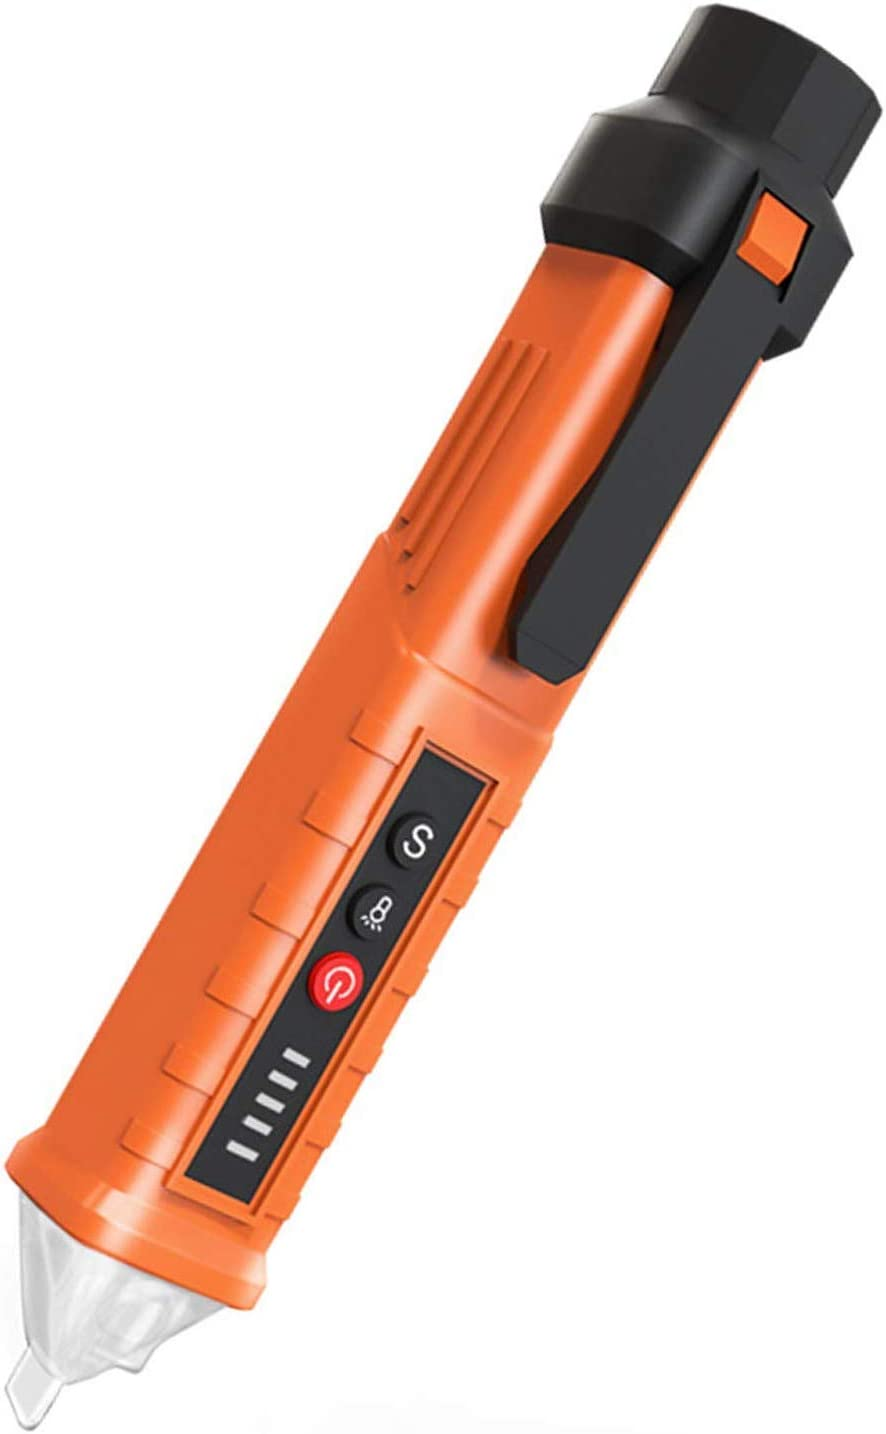 Details about  /AC Non-Contact LCD Electric Test Pen Voltage Digital Detector Tester 12~1000V WY